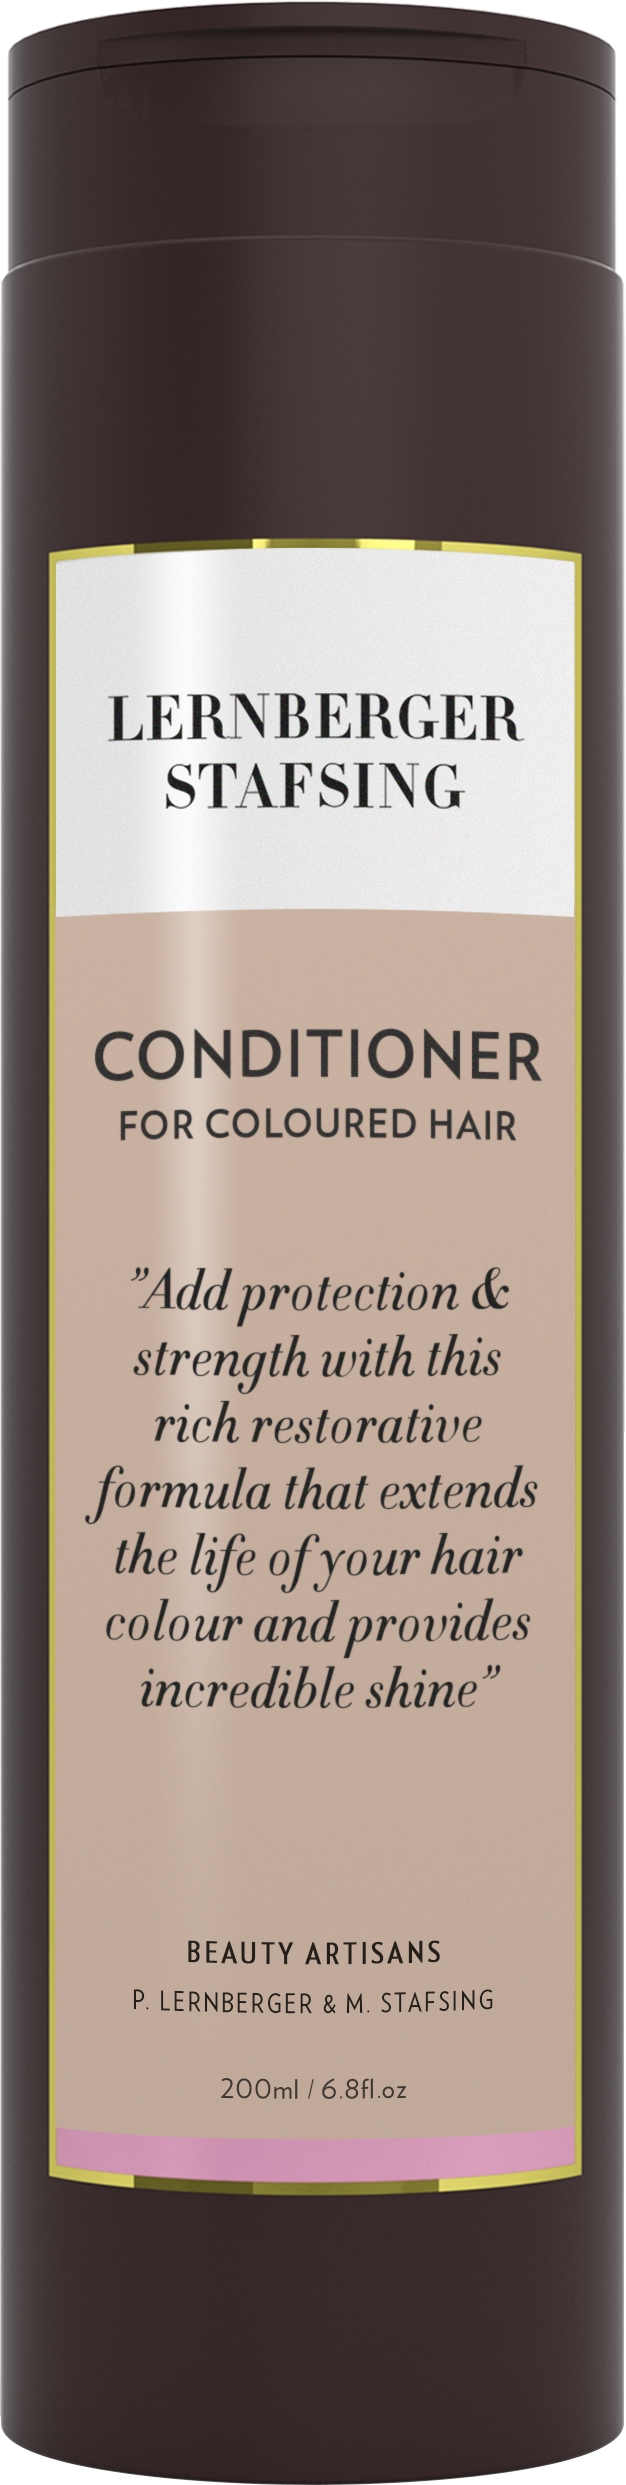 Lernberger Stafsing For Coloured Hair Conditioner, 200 ml